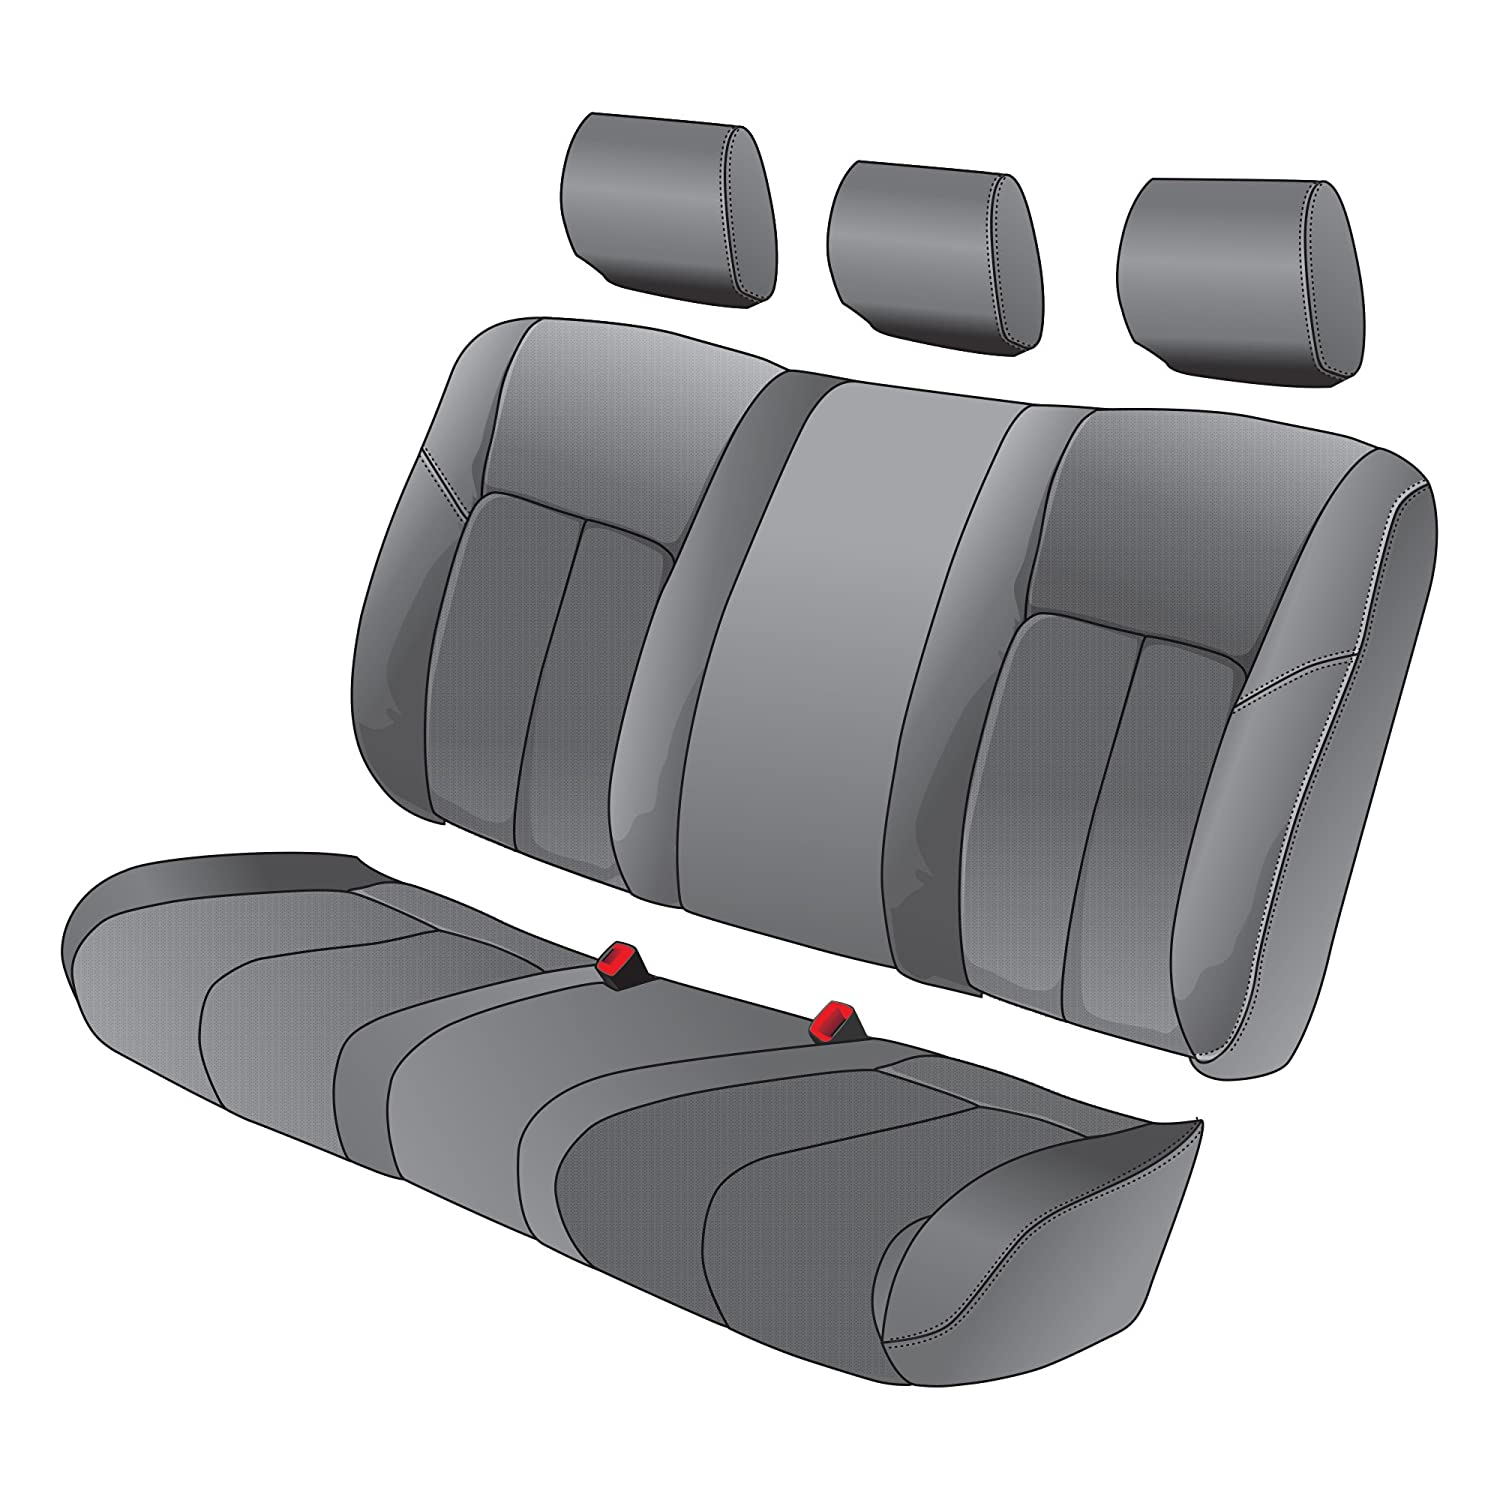 Clazzio 315012gry Grey Leather Front and Rear Row Seat Cover for Honda Civic 2 Door DX//LX